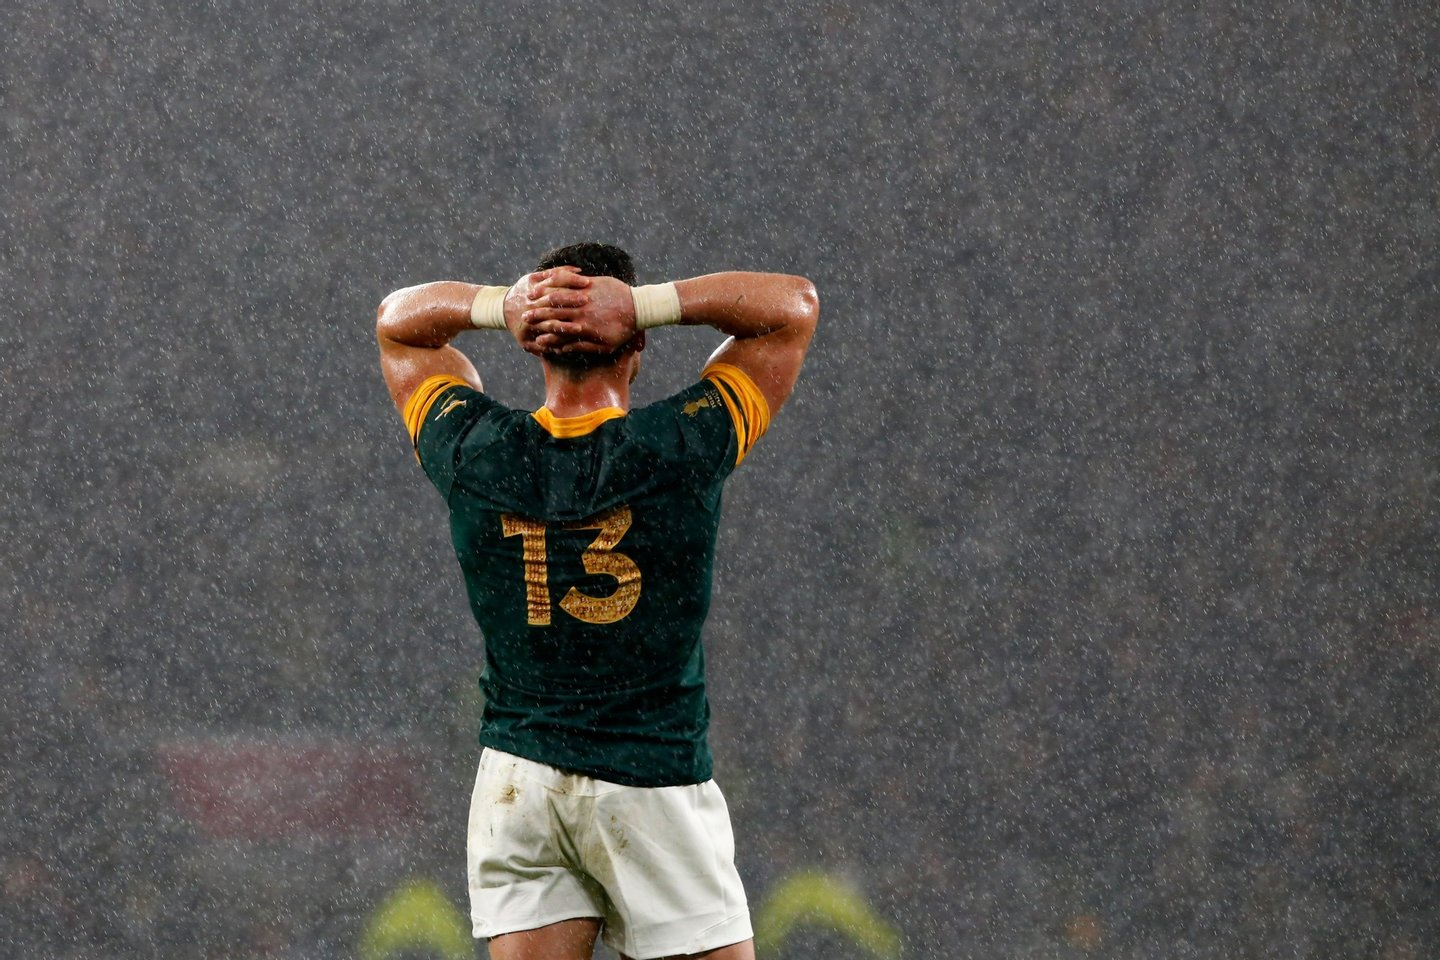 LONDON, ENGLAND - OCTOBER 24: Jesse Kriel of South Africa holds his head in his hands in dejection as the rain falls during the 2015 Rugby World Cup Semi Final match between South Africa and New Zealand at Twickenham Stadium on October 24, 2015 in London, United Kingdom. (Photo by Stu Forster/Getty Images)